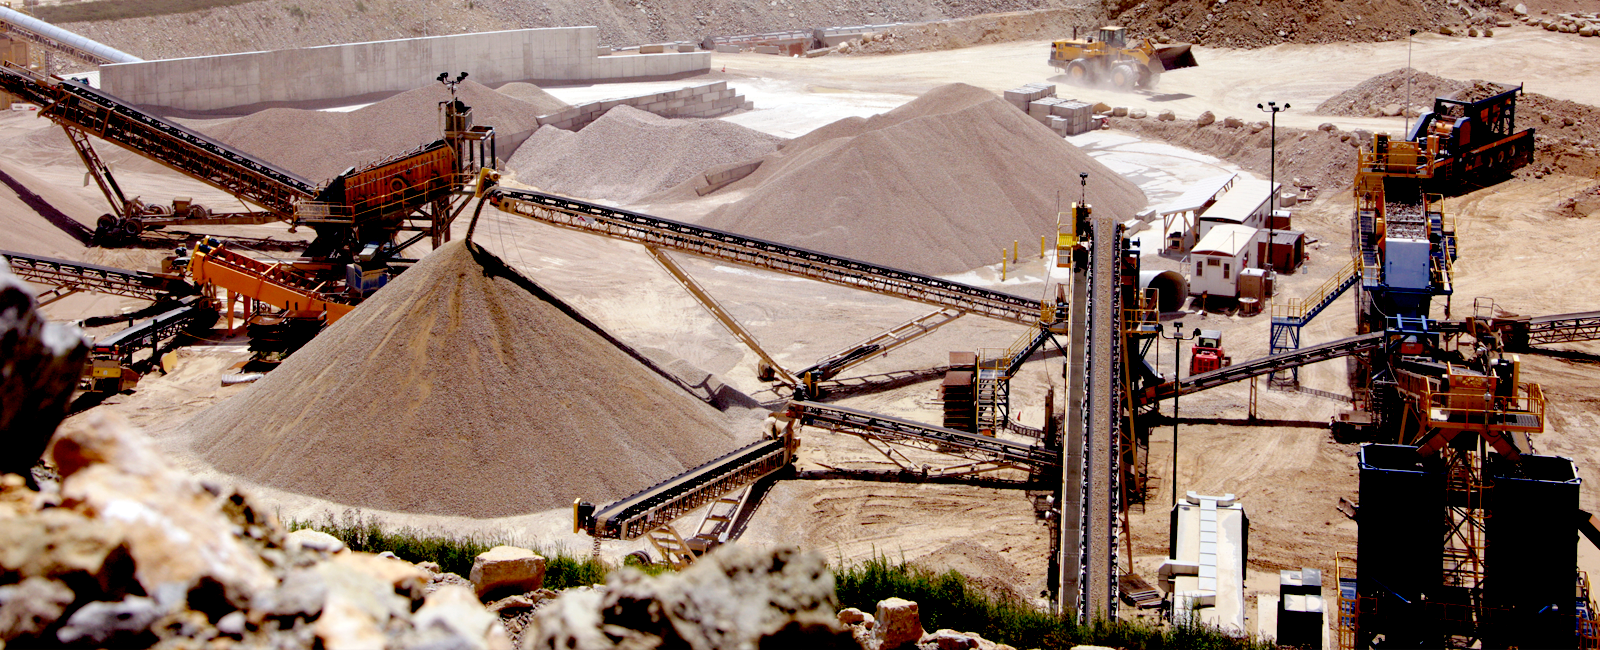 Pattison Crushing plant overview